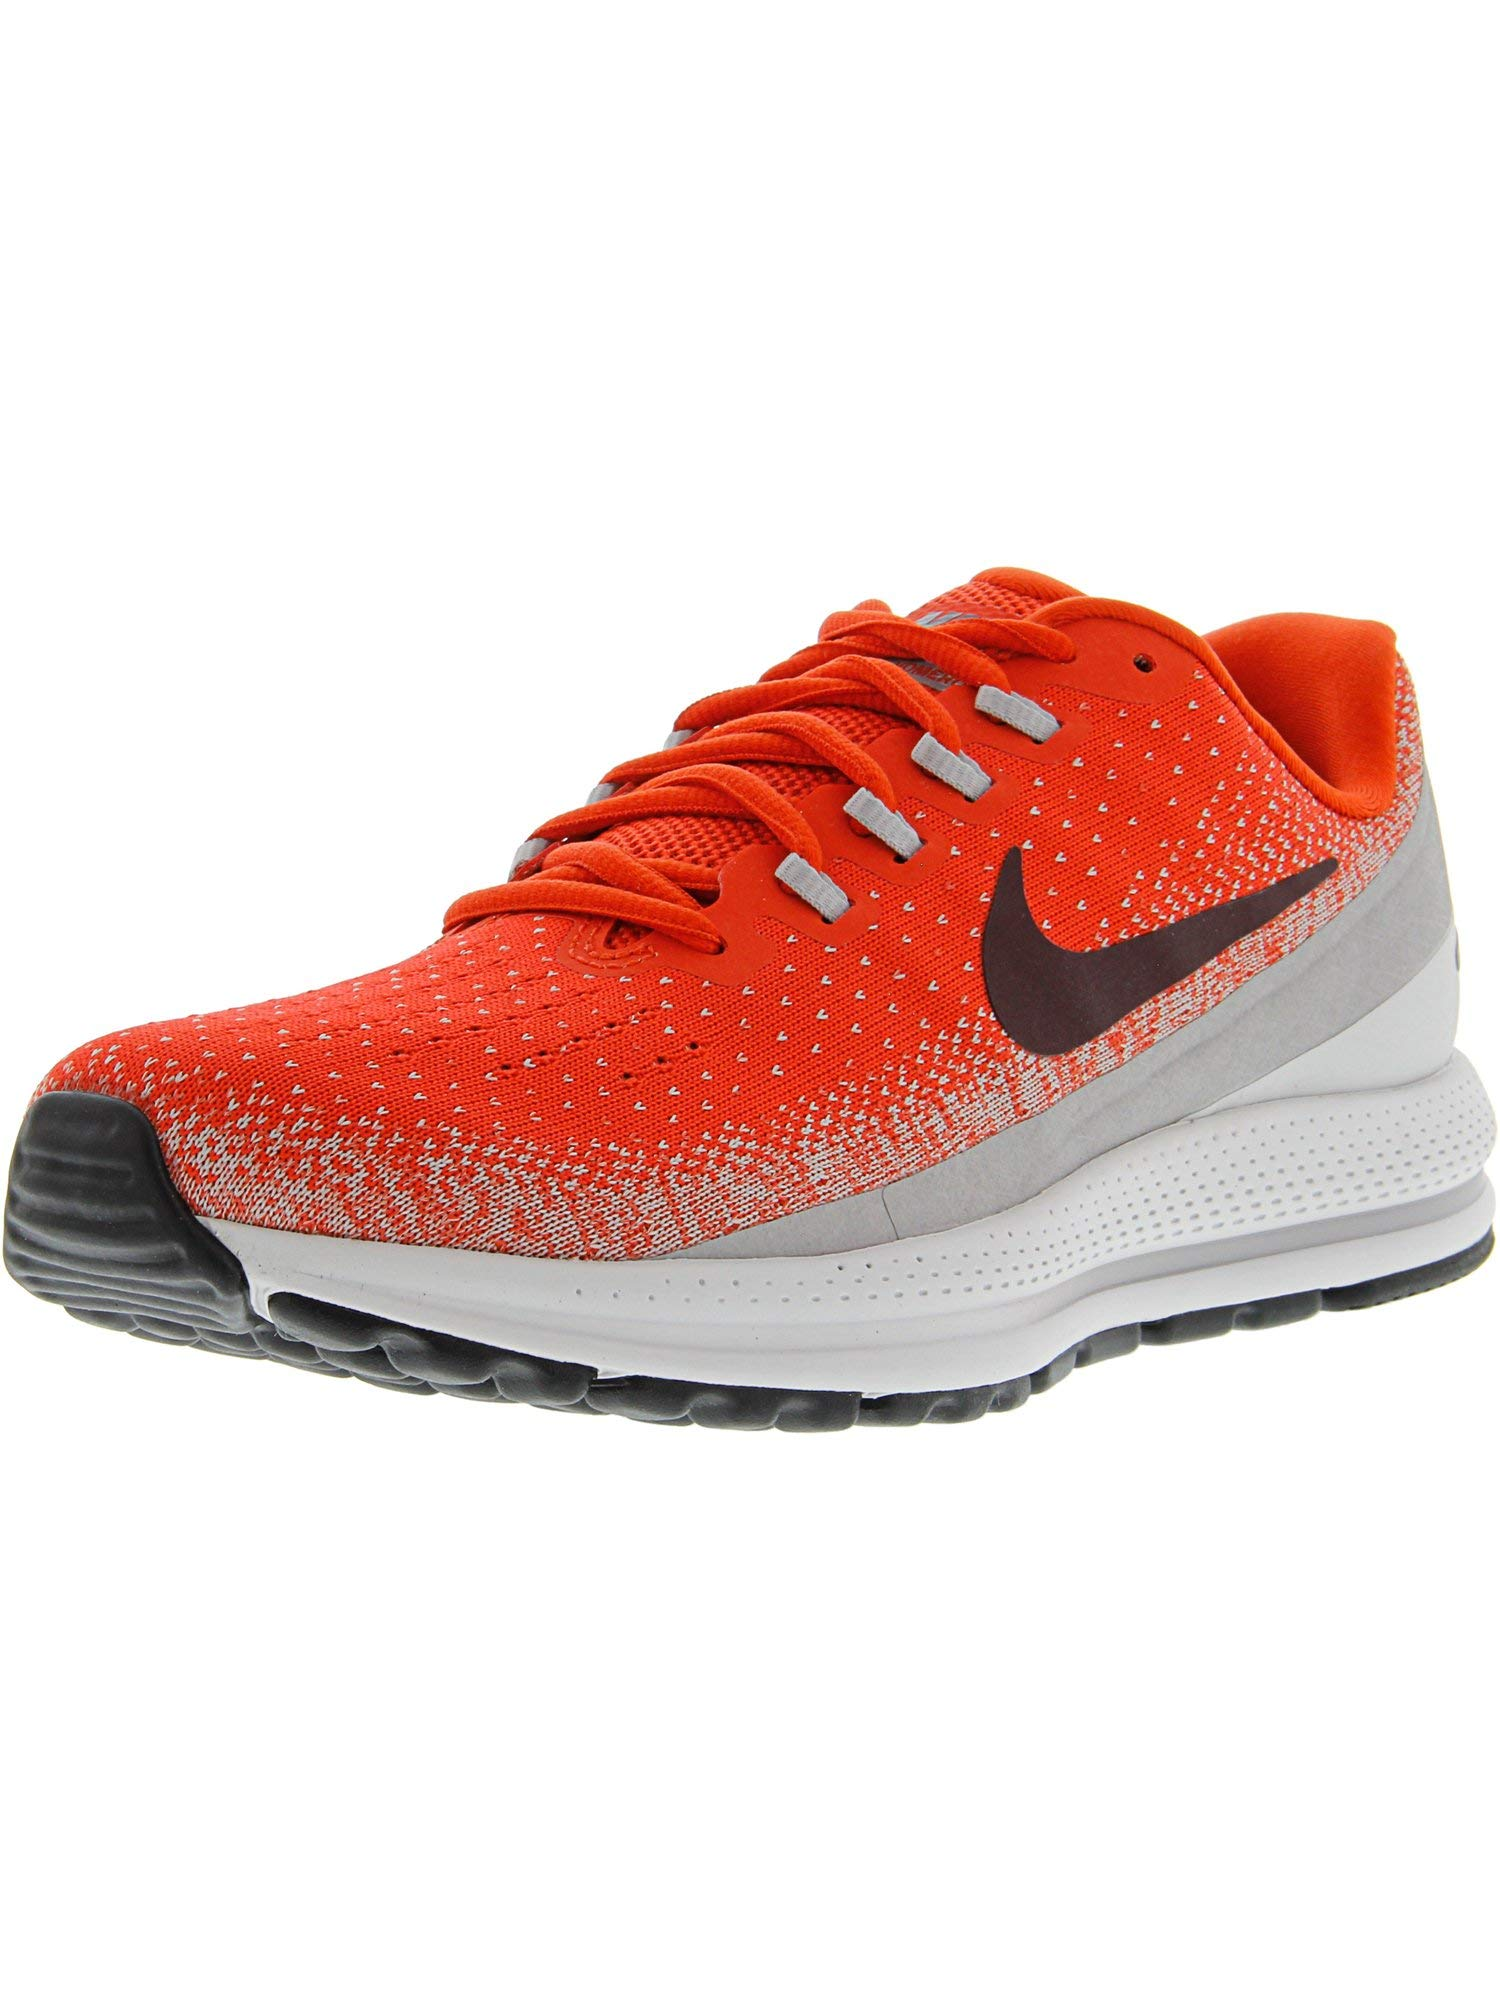 18338e1f43676 Galleon - Nike Men s Air Zoom Vomero 13 Habanero Red Deep Burgundy  Ankle-High Fabric Running Shoe - 8M